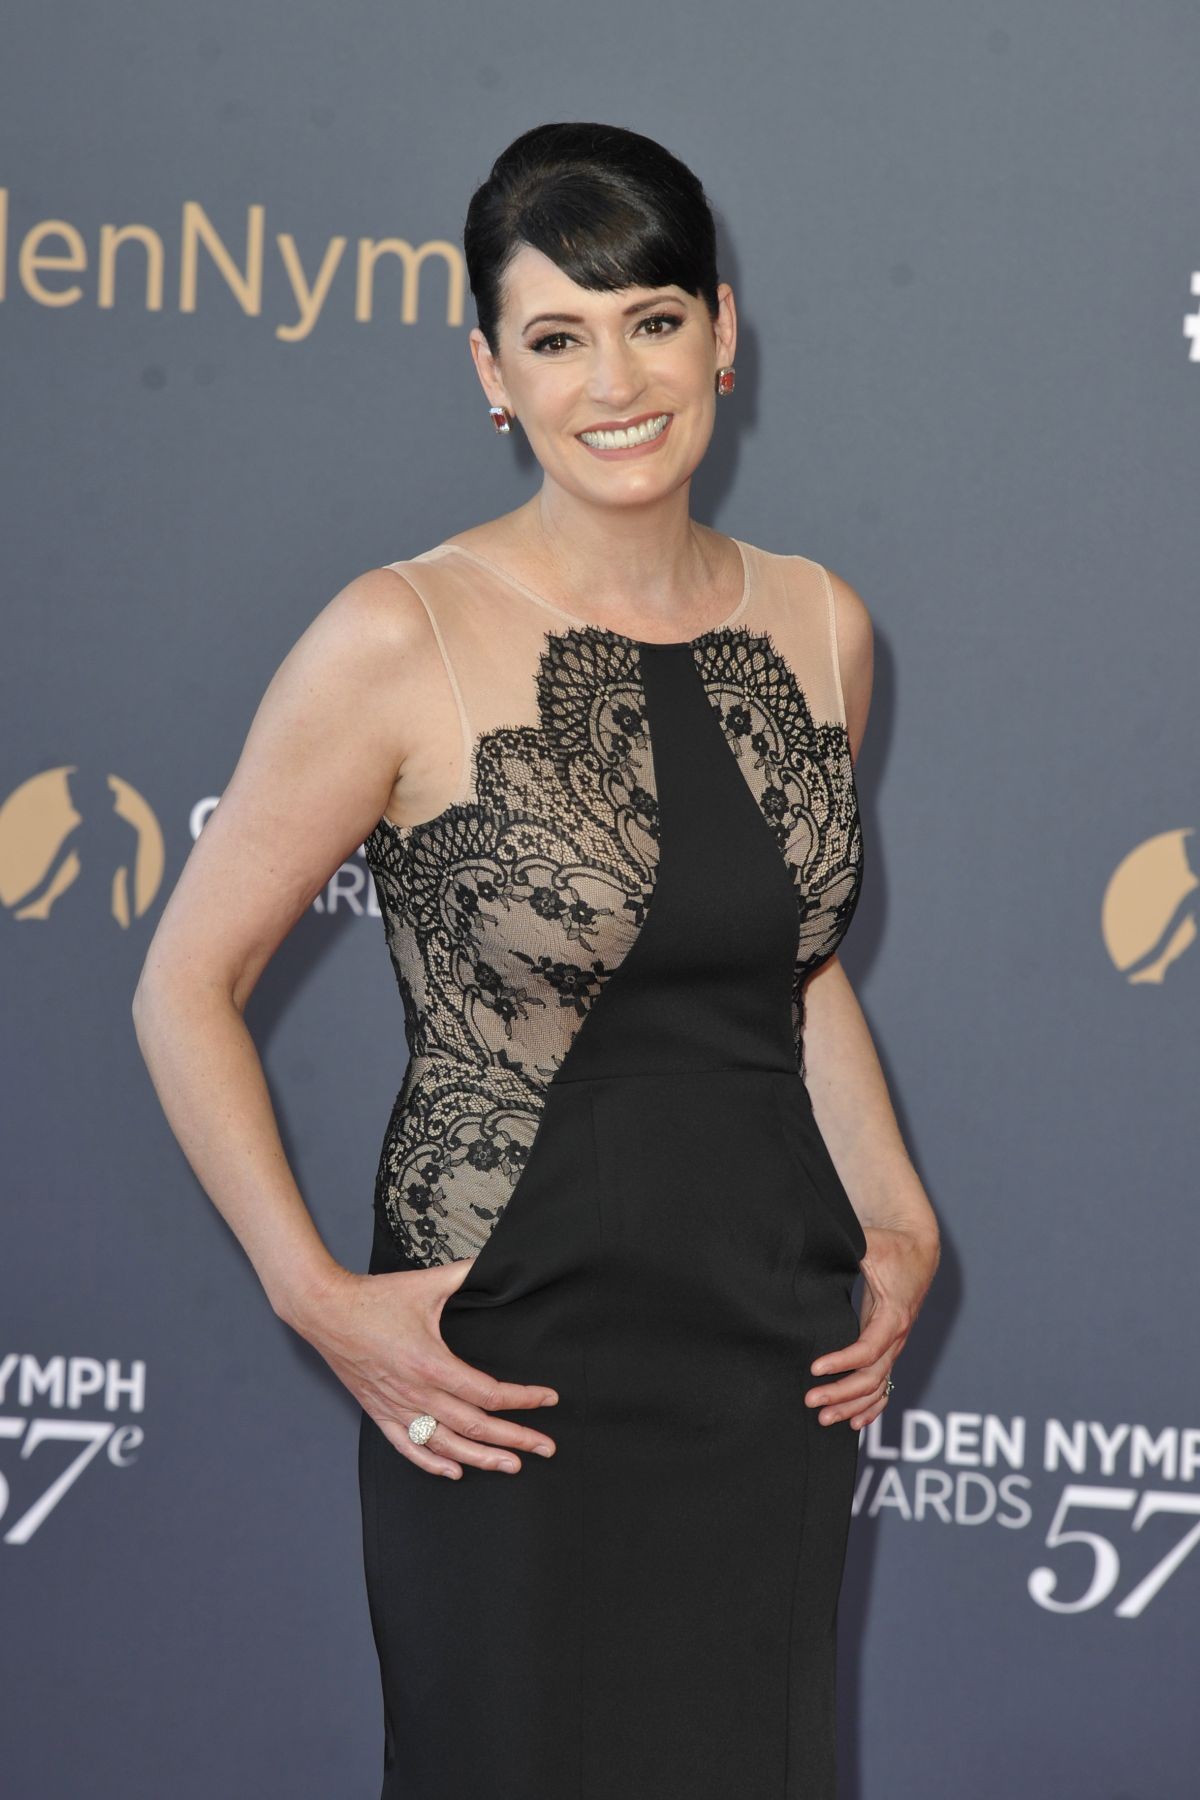 Paget Brewster Hot Swimsuit Pics, Sexy Topless Photos